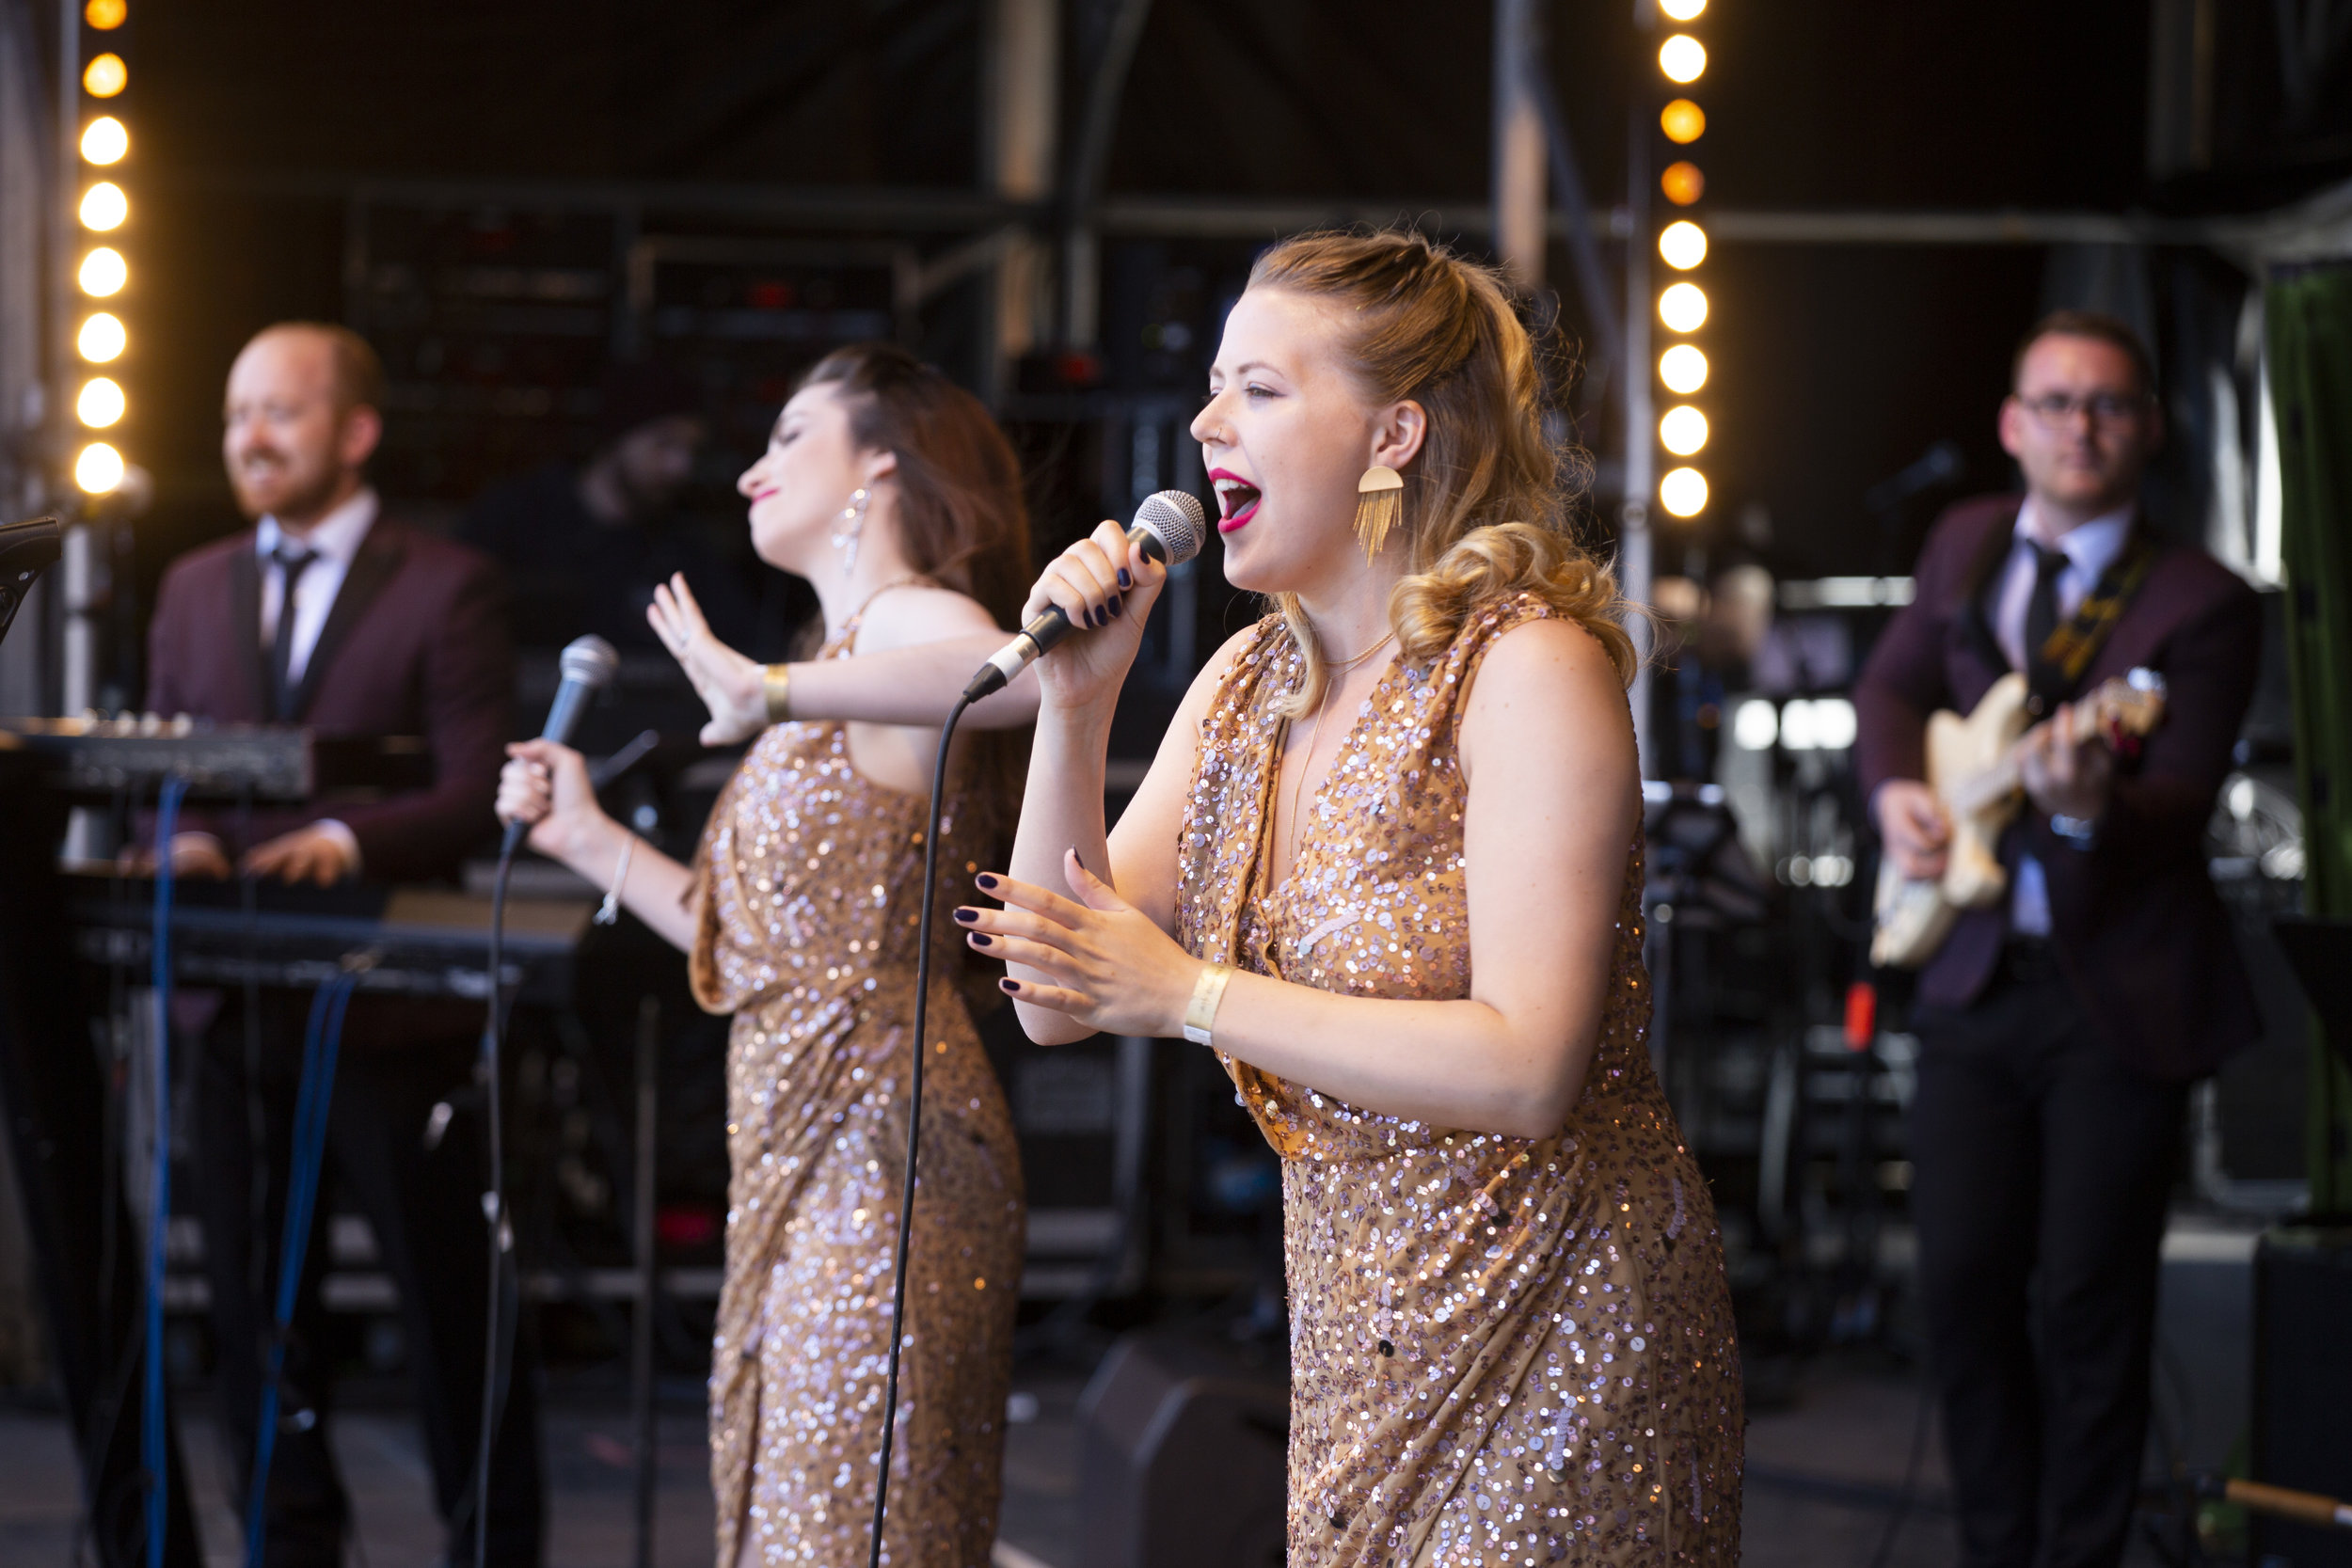 Concerts_In_The_Park_F3A2514_1.jpg